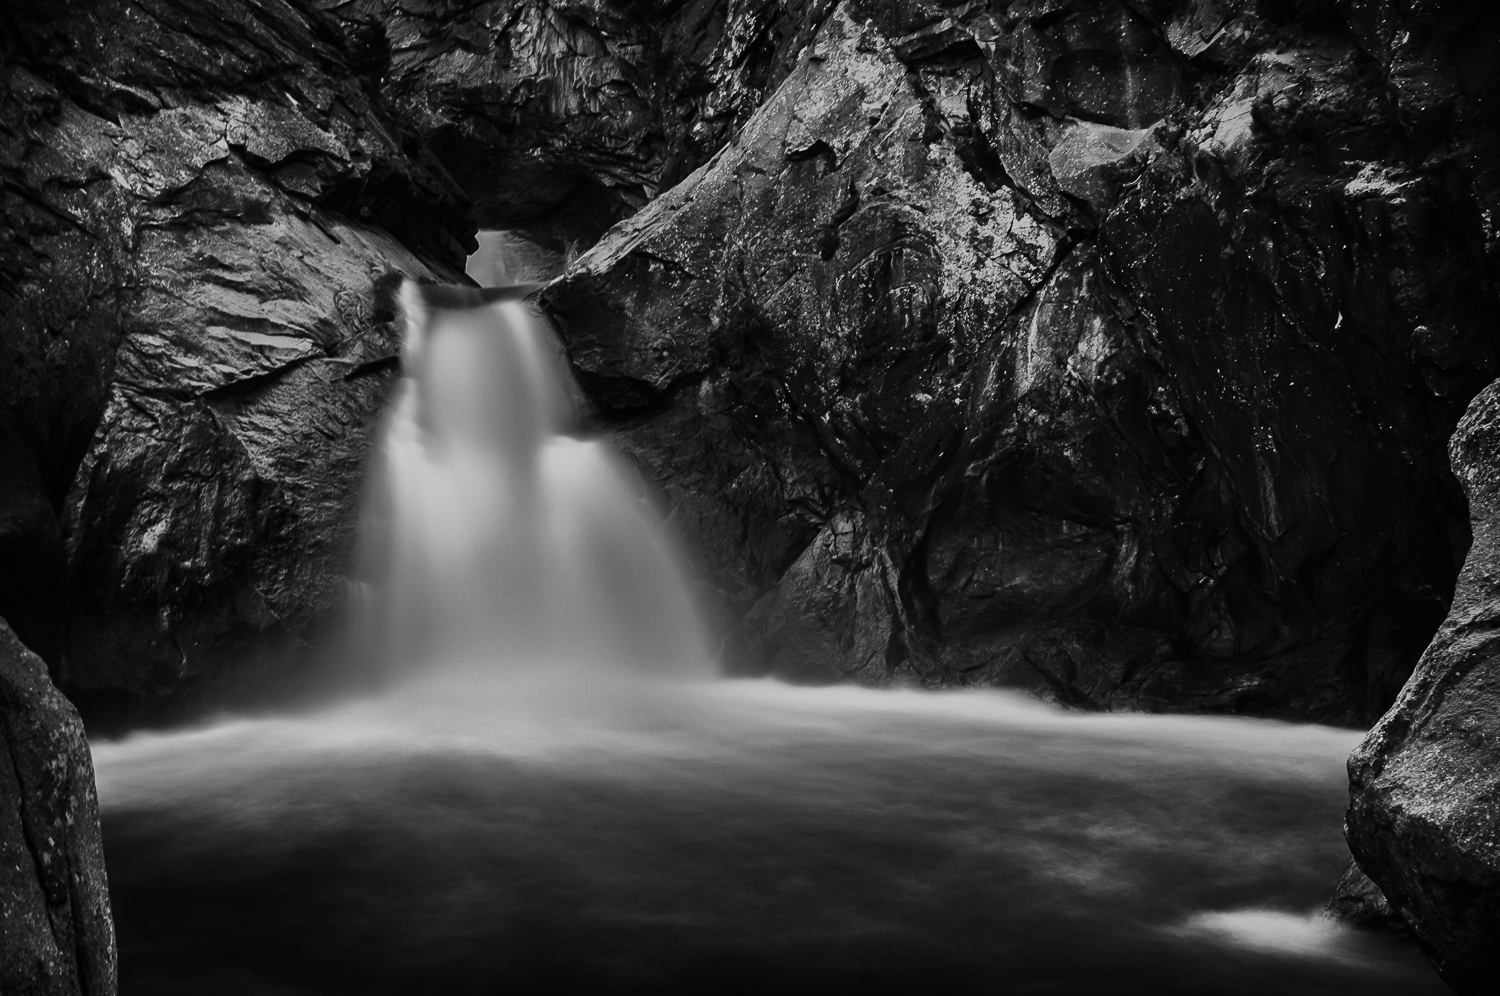 Roaring River Falls - 25 seconds at f/16